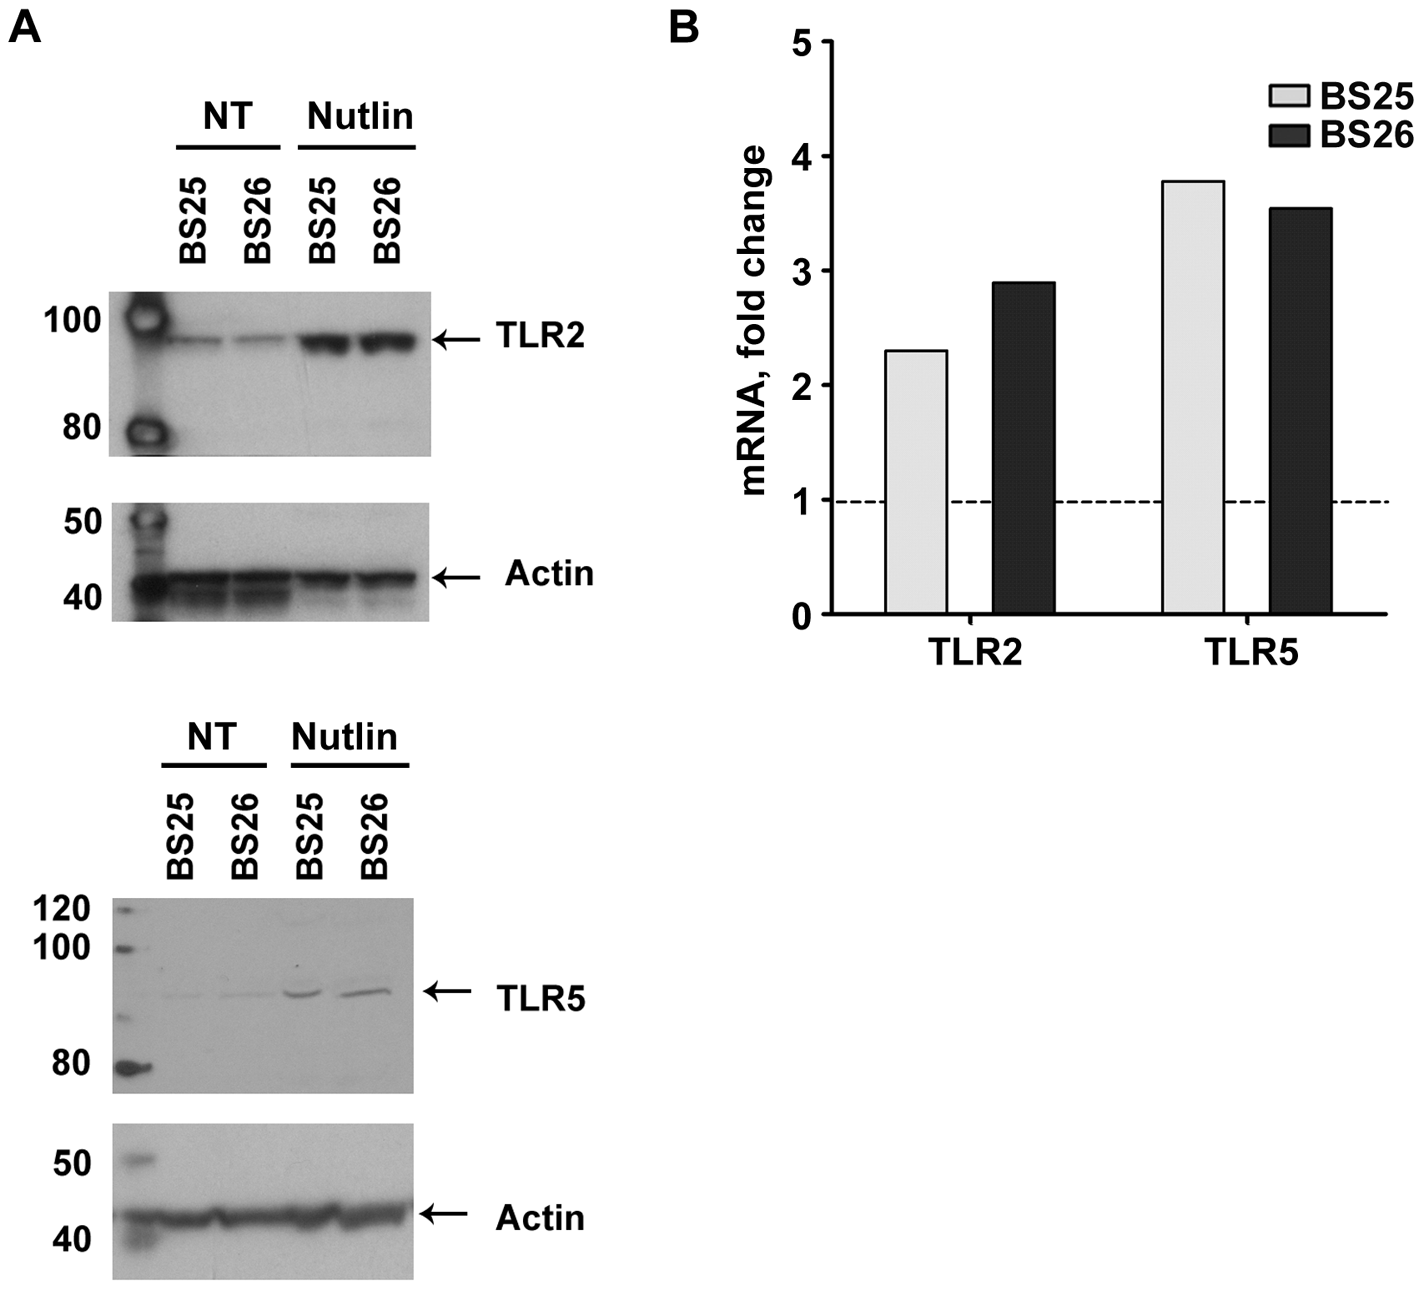 Nutlin induces <i>TLR2</i> and <i>TLR5</i> mRNA expression as well as proteins.